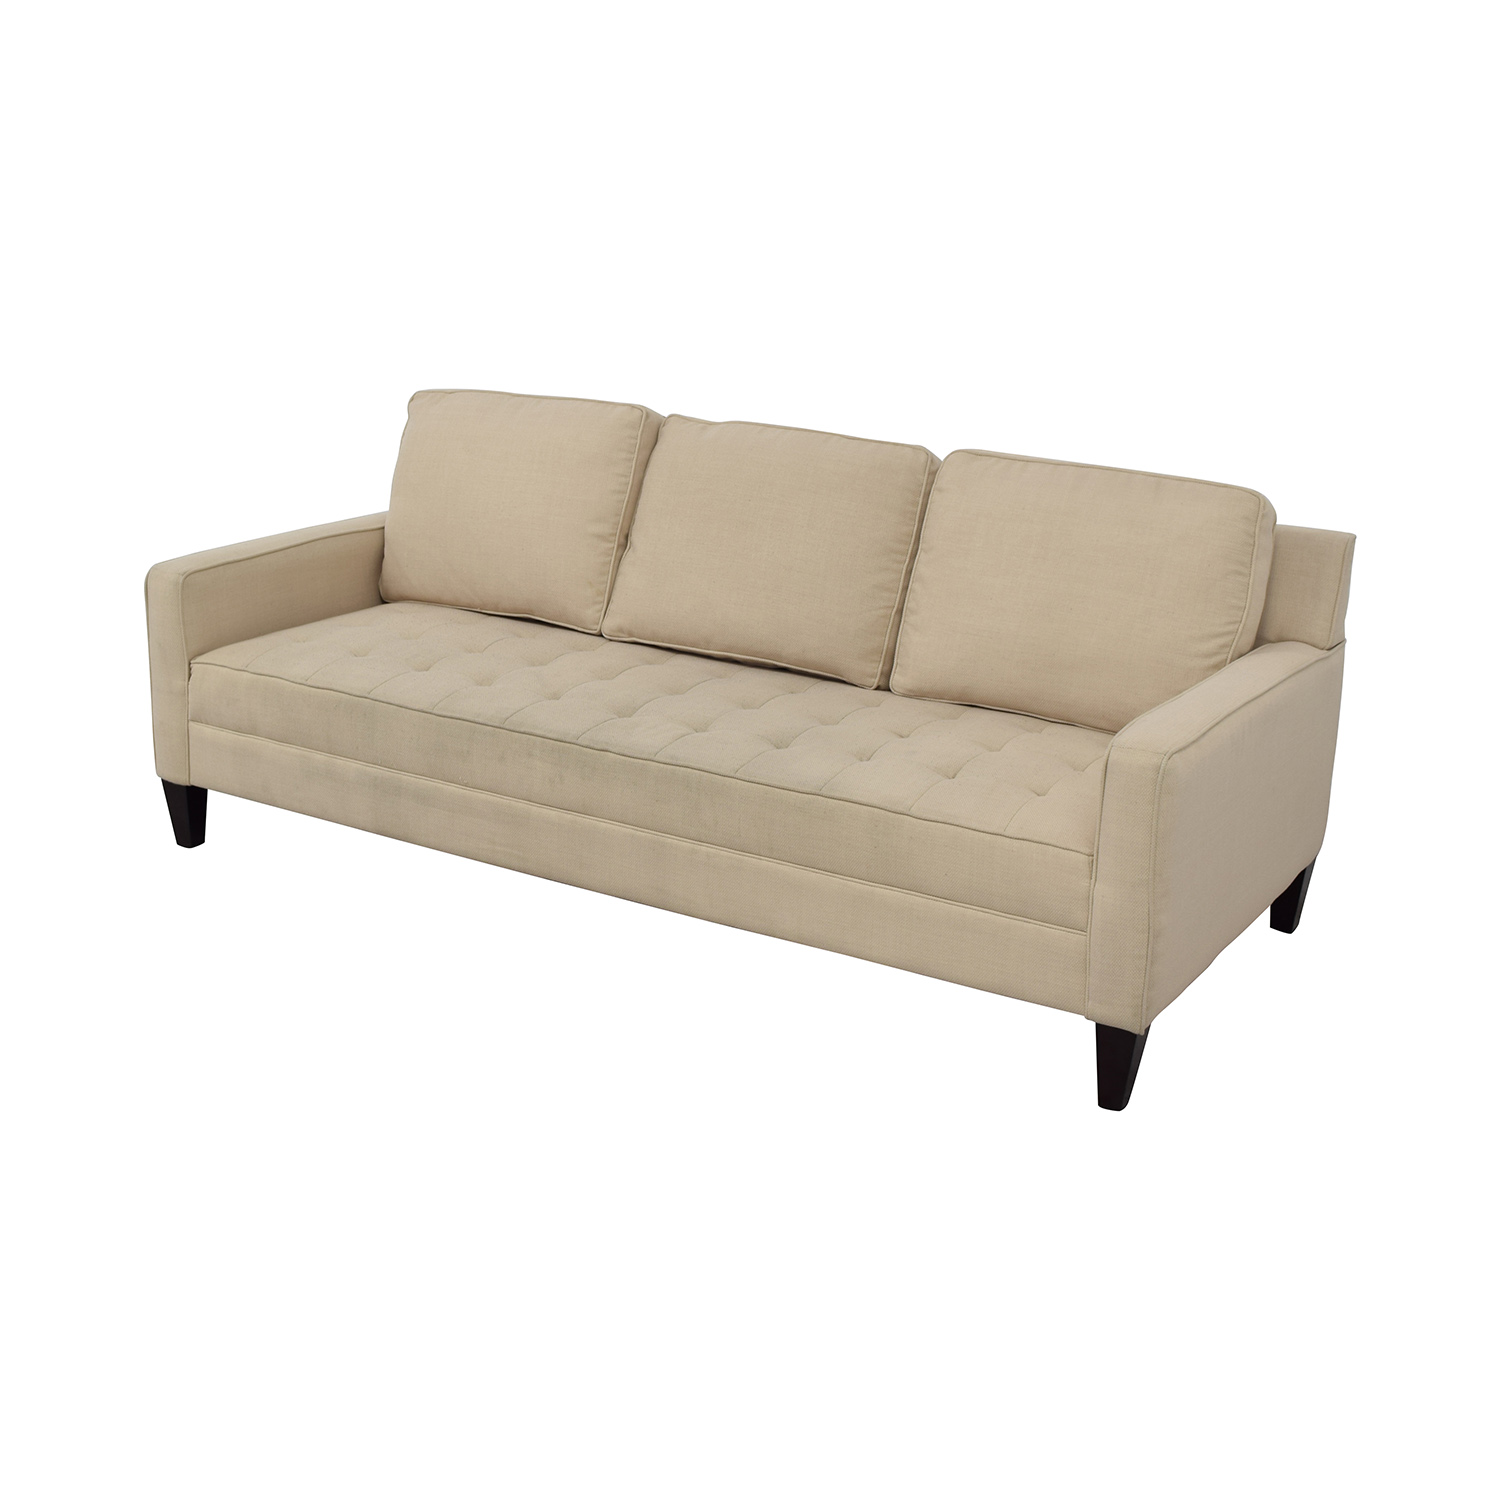 single sofa chairs arm table australia sofas le tissier bed thesofa